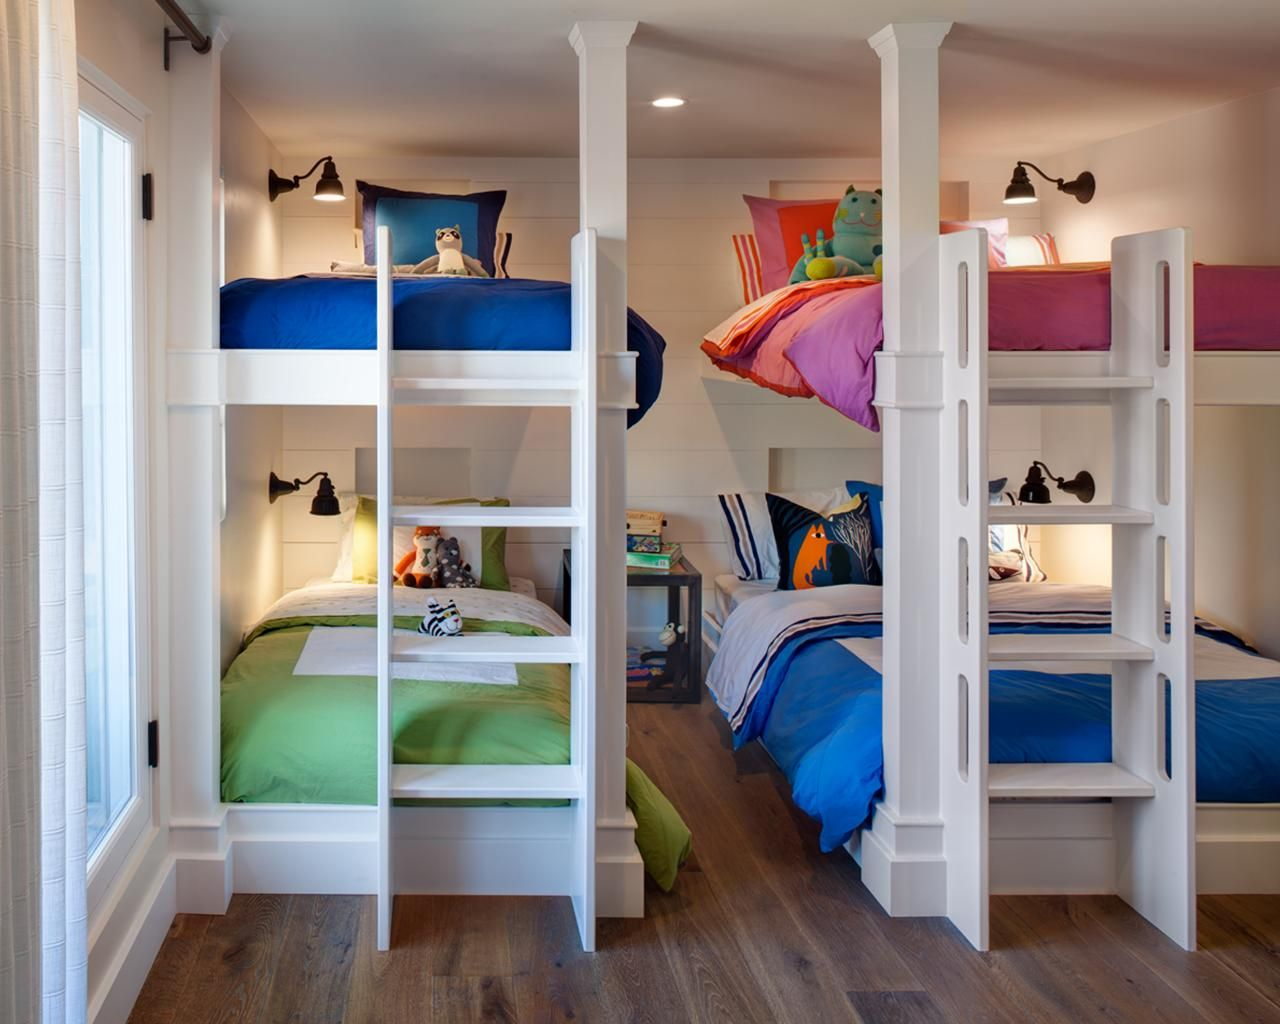 Dormitorios Multiples Neutral Kids Room With Multiple Bunk Beds Hgtv Organic Cove